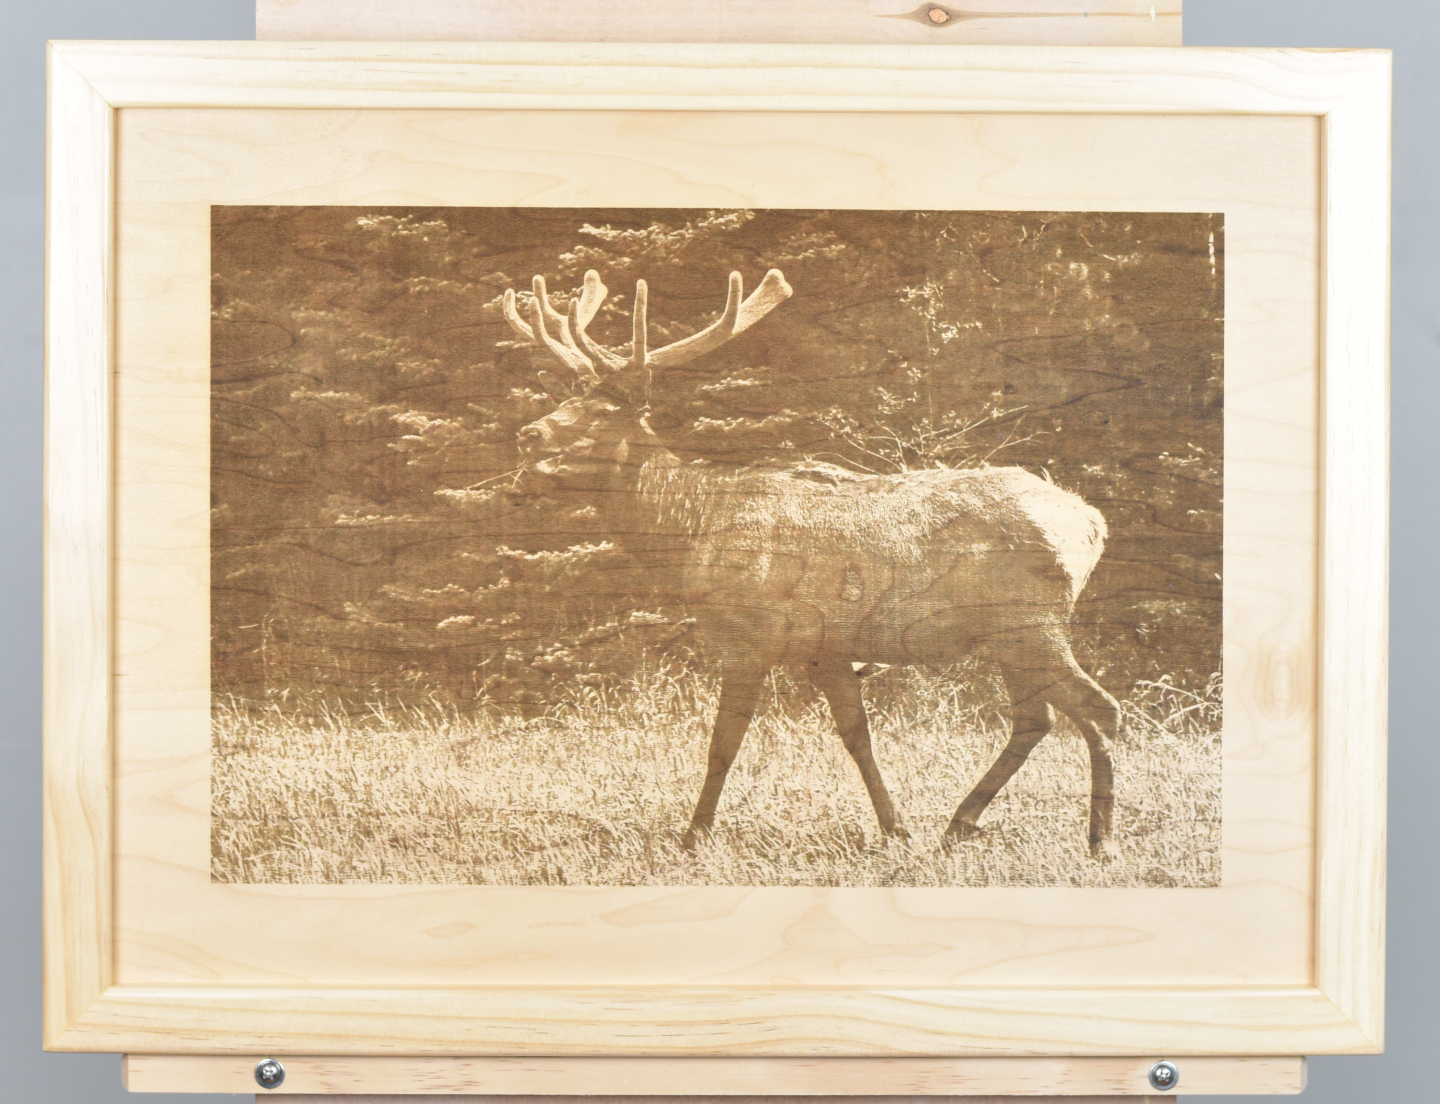 A wood burning (digital pyrograph) of an 8-pointed bull elk grazing in a meadow before a stand of pine trees. Photograph by Brigitte Werner.